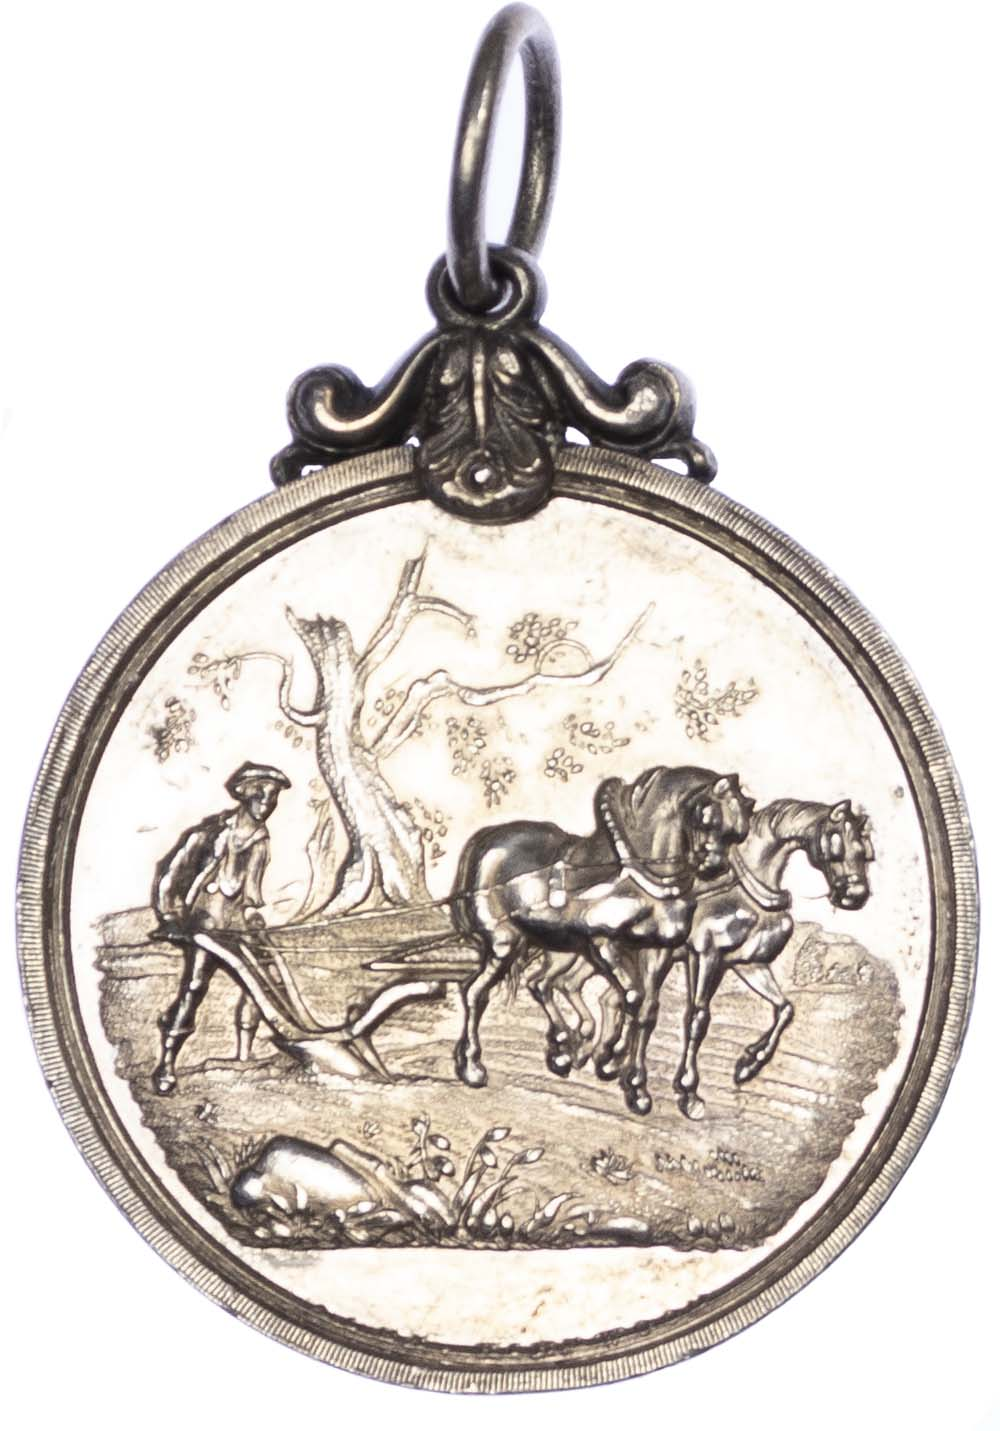 Agricultural prize medal, Highland and Agricultural Society of Scotland Silver medal 1864